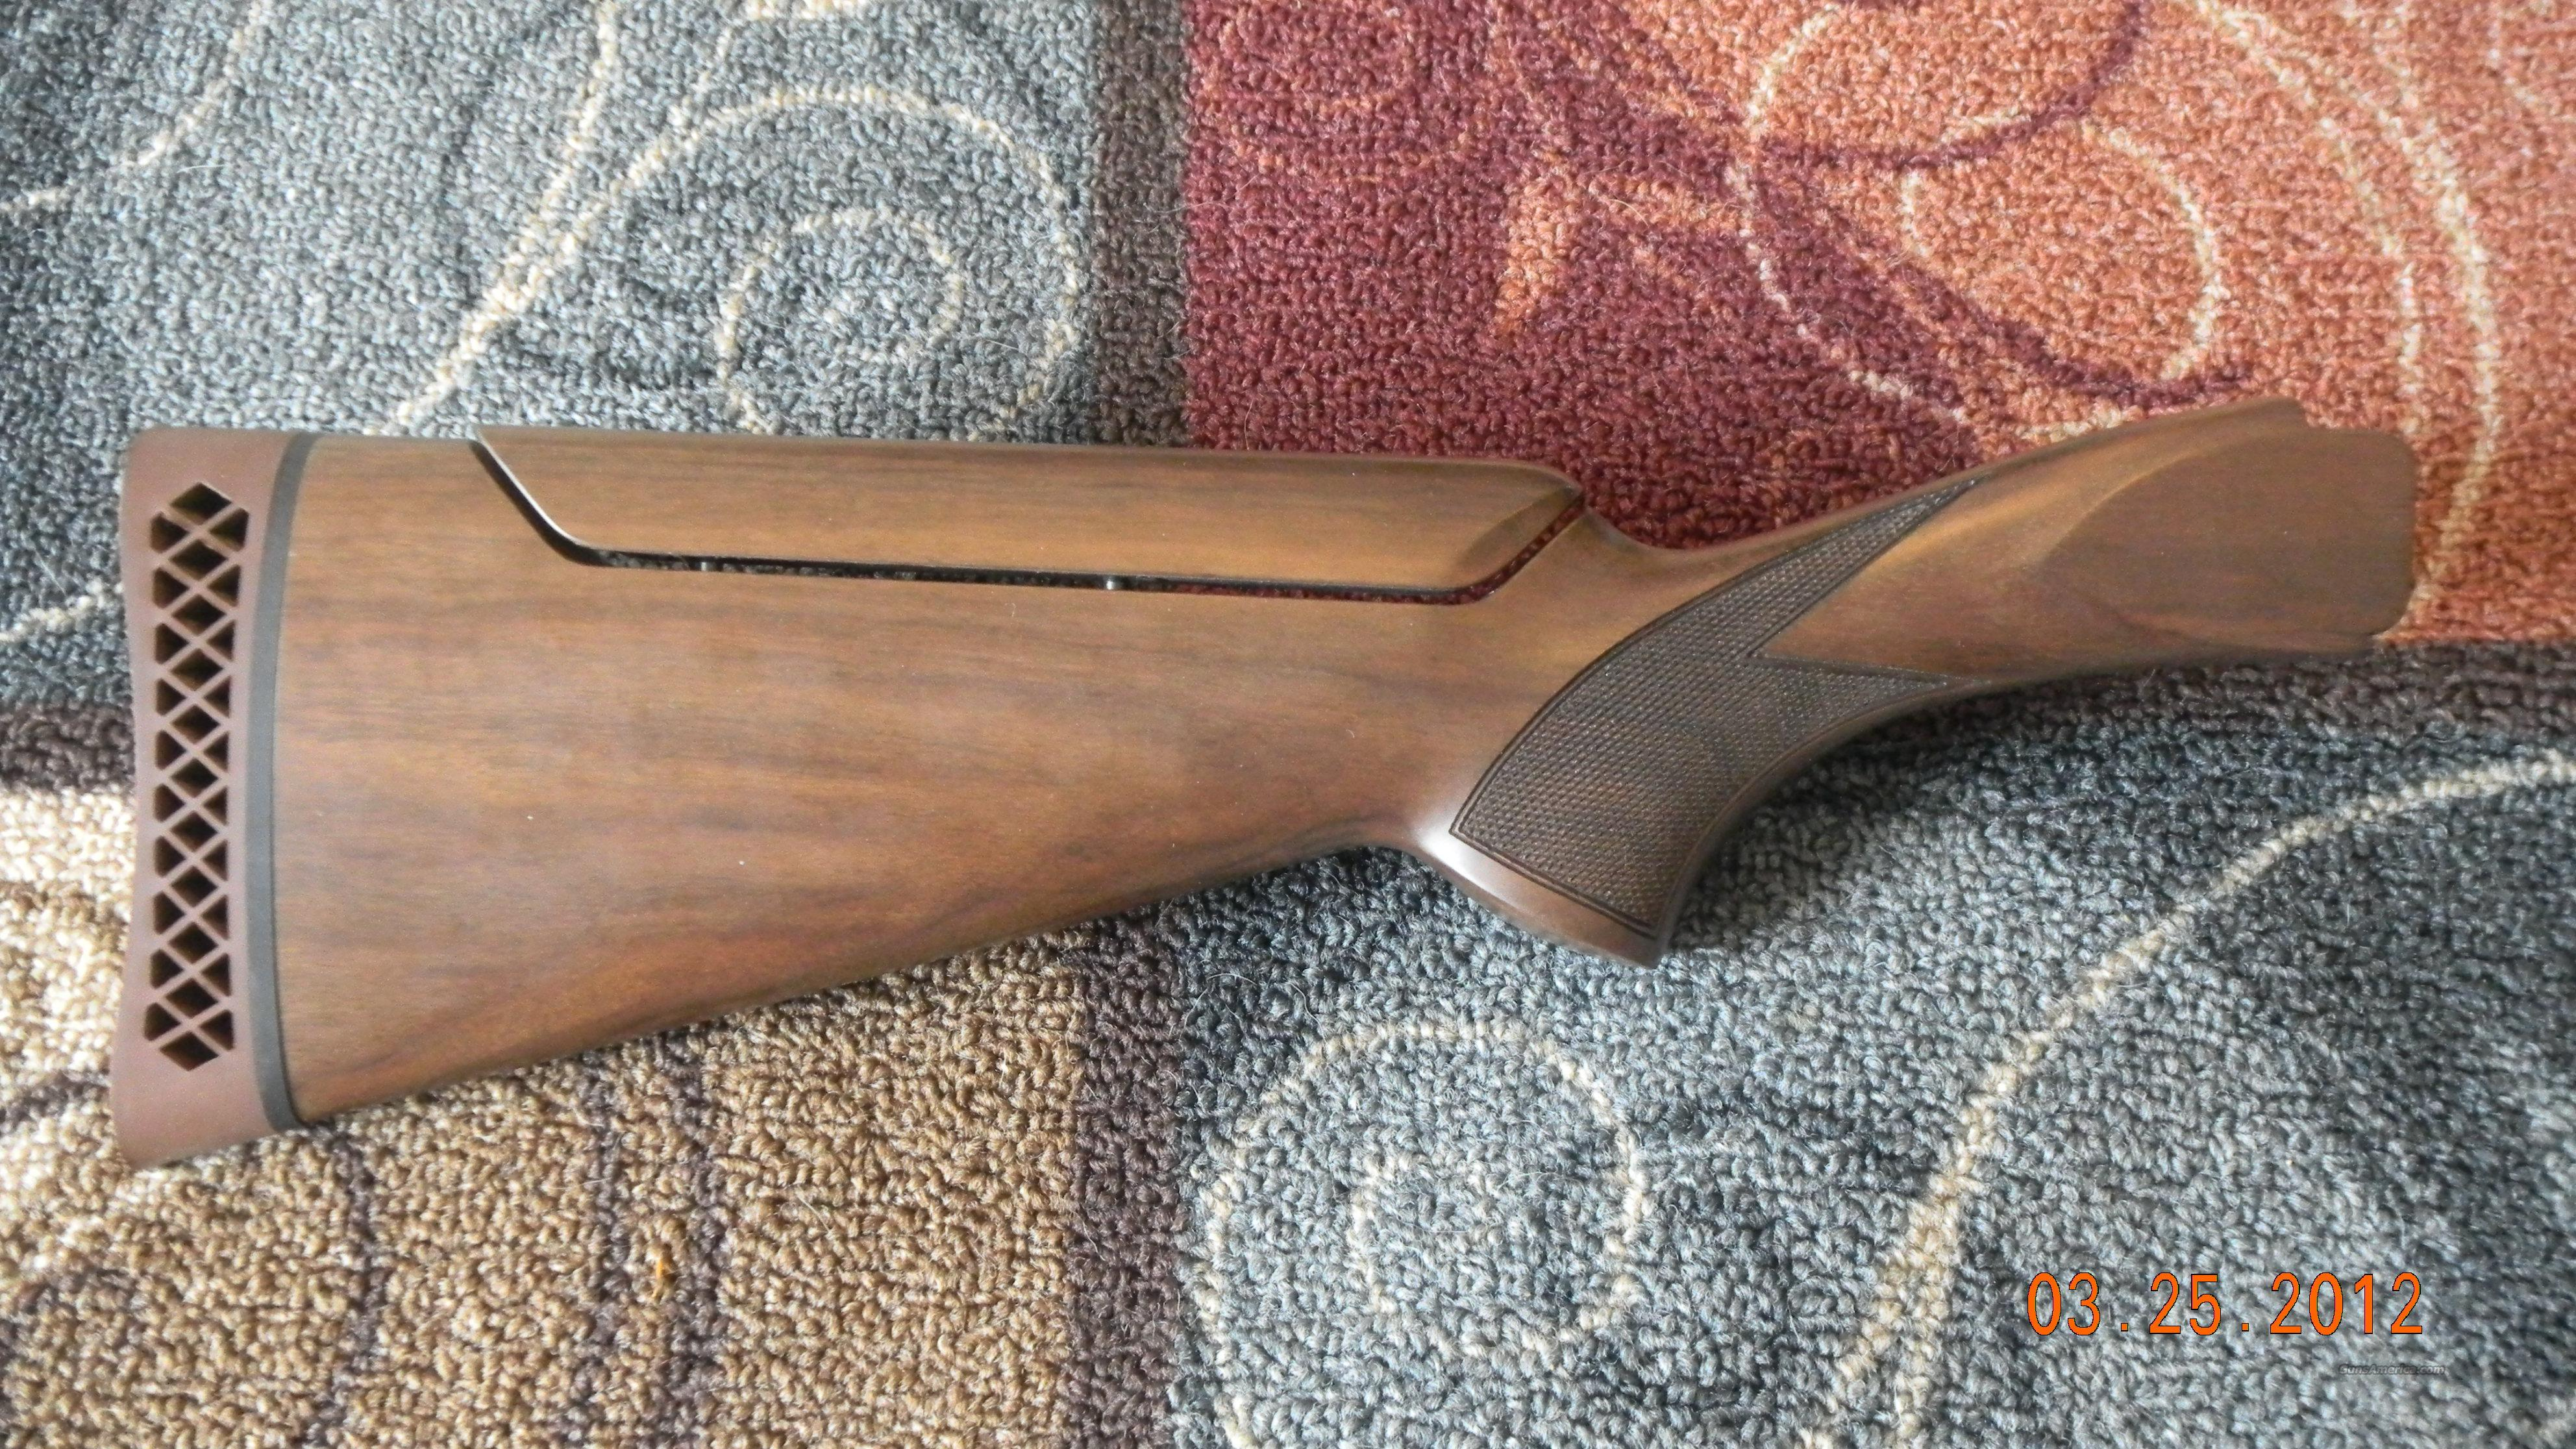 Browning Bt 99 Stock W Adjustable Comb For Sale